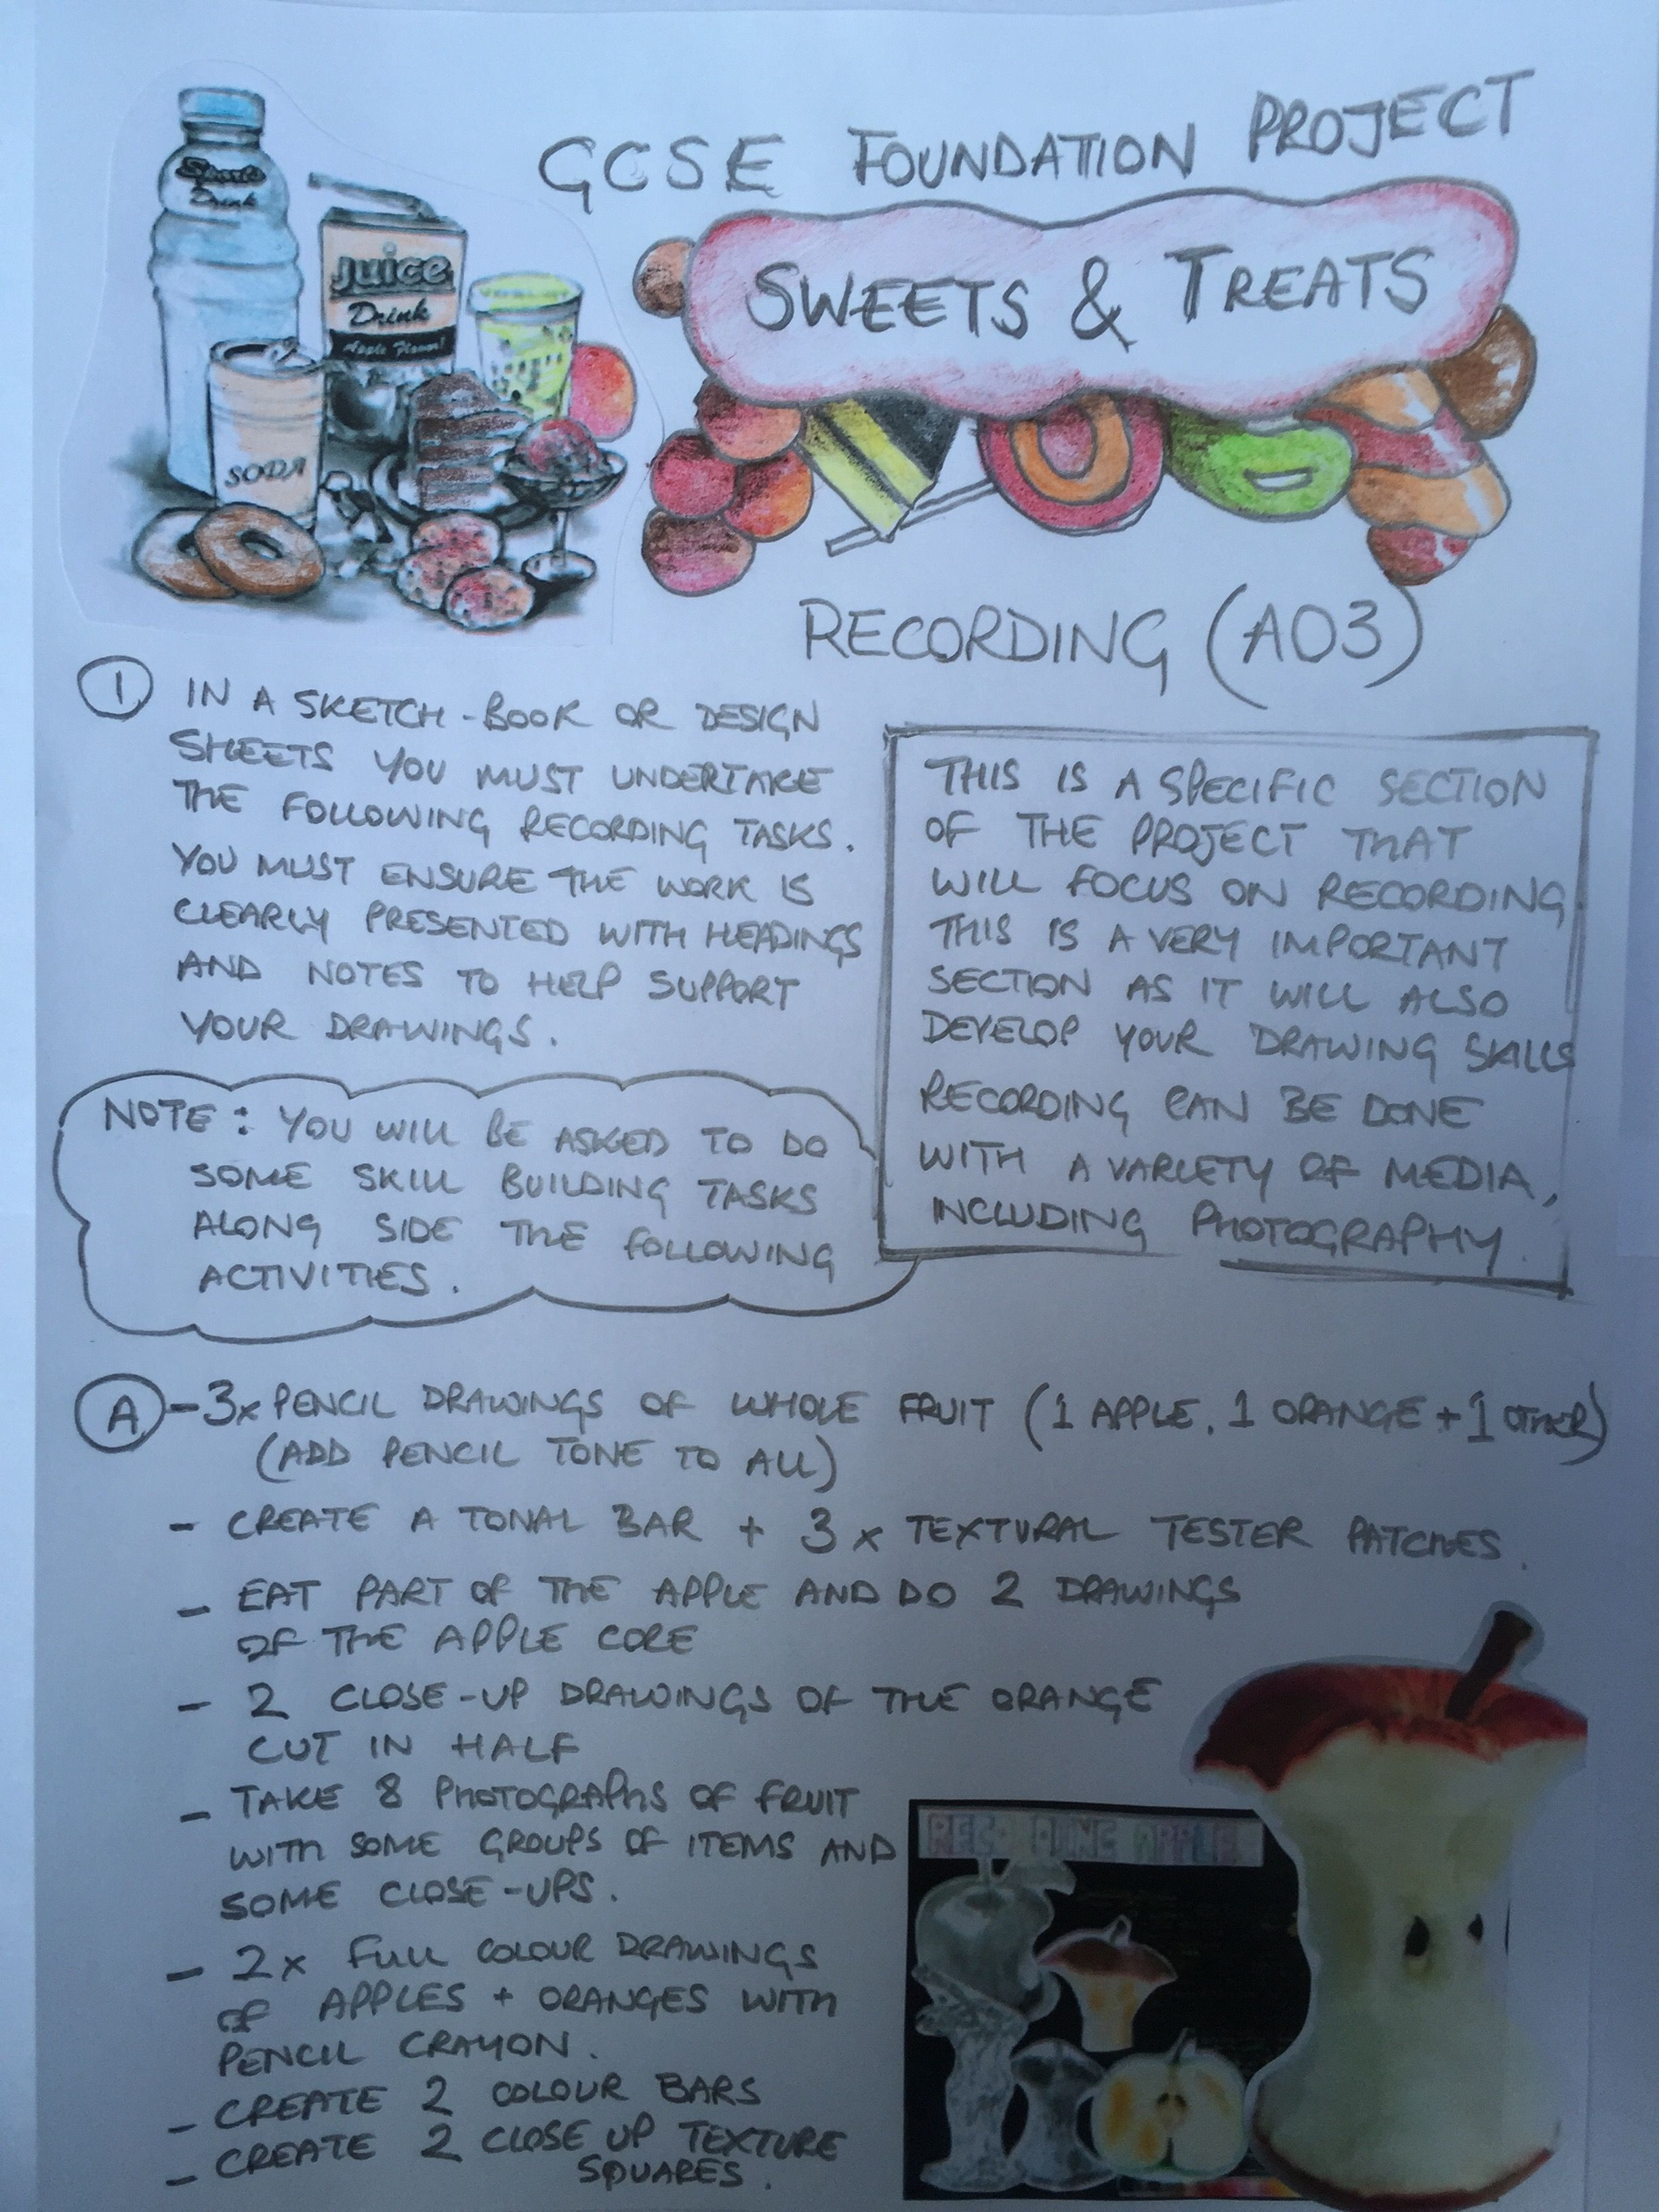 Sweets And Treats Project Recording Page 1